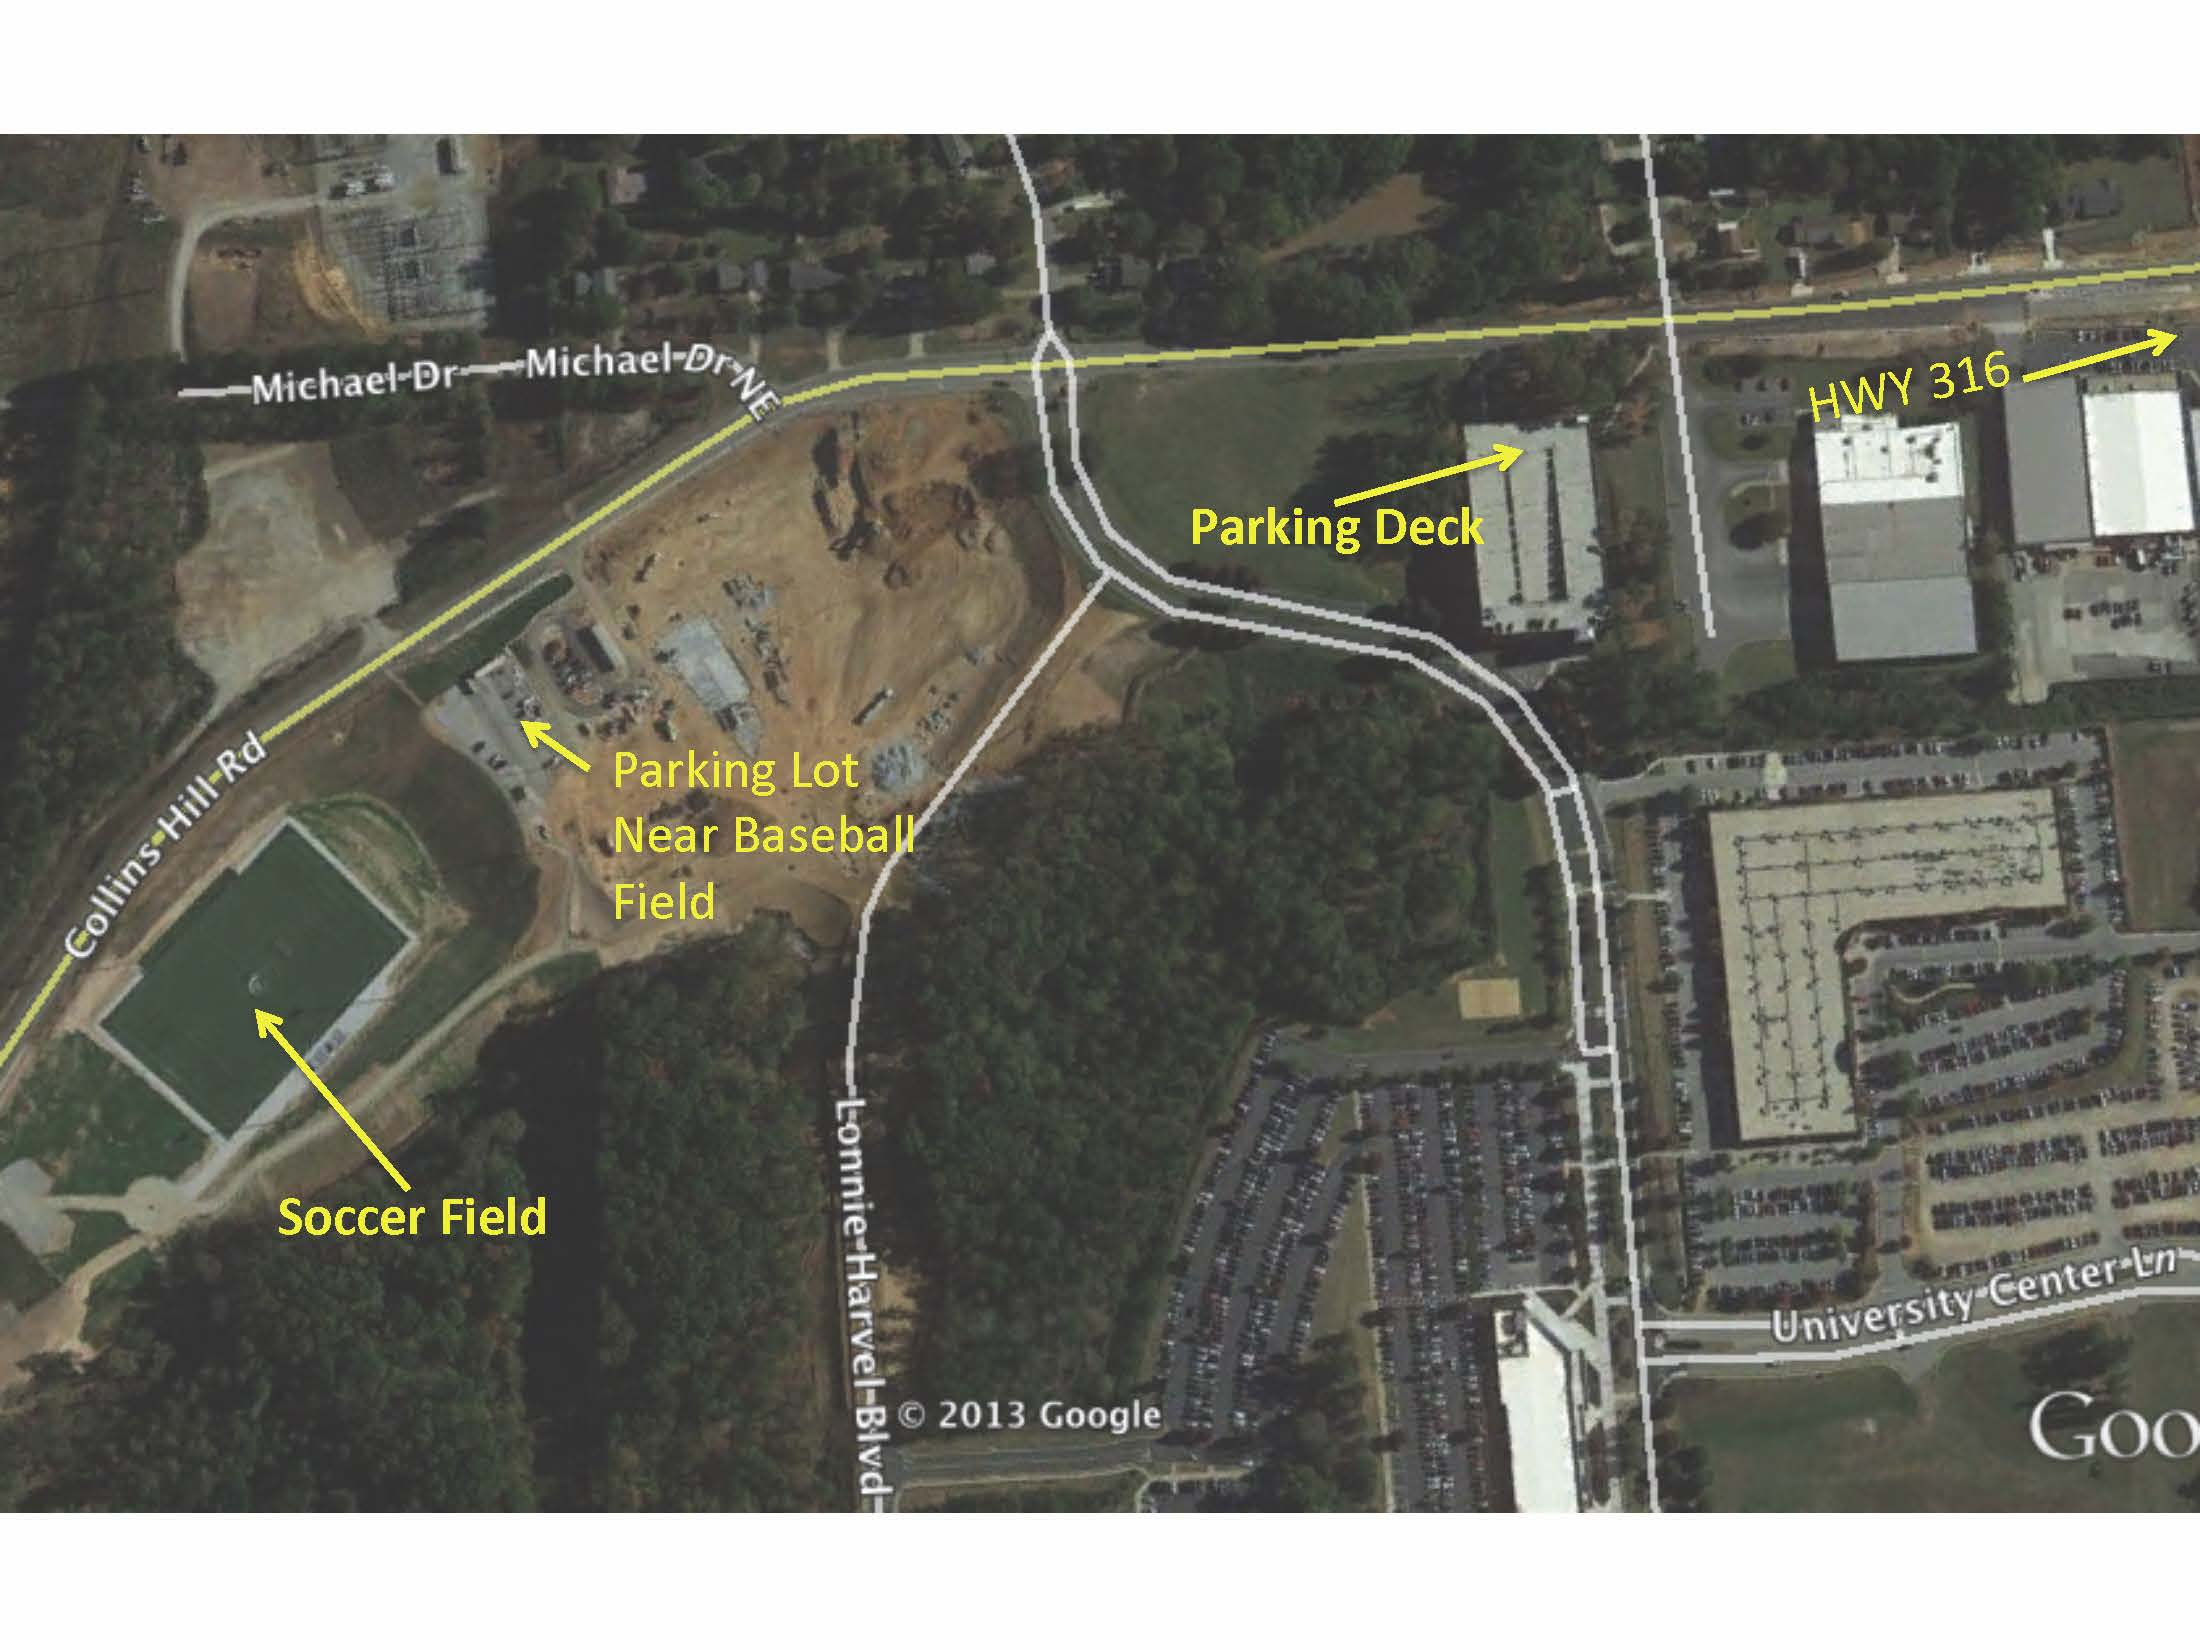 Map Of Georgia Gwinnett College.Georgia Gwinnett College Gwinnett Soccer Academy